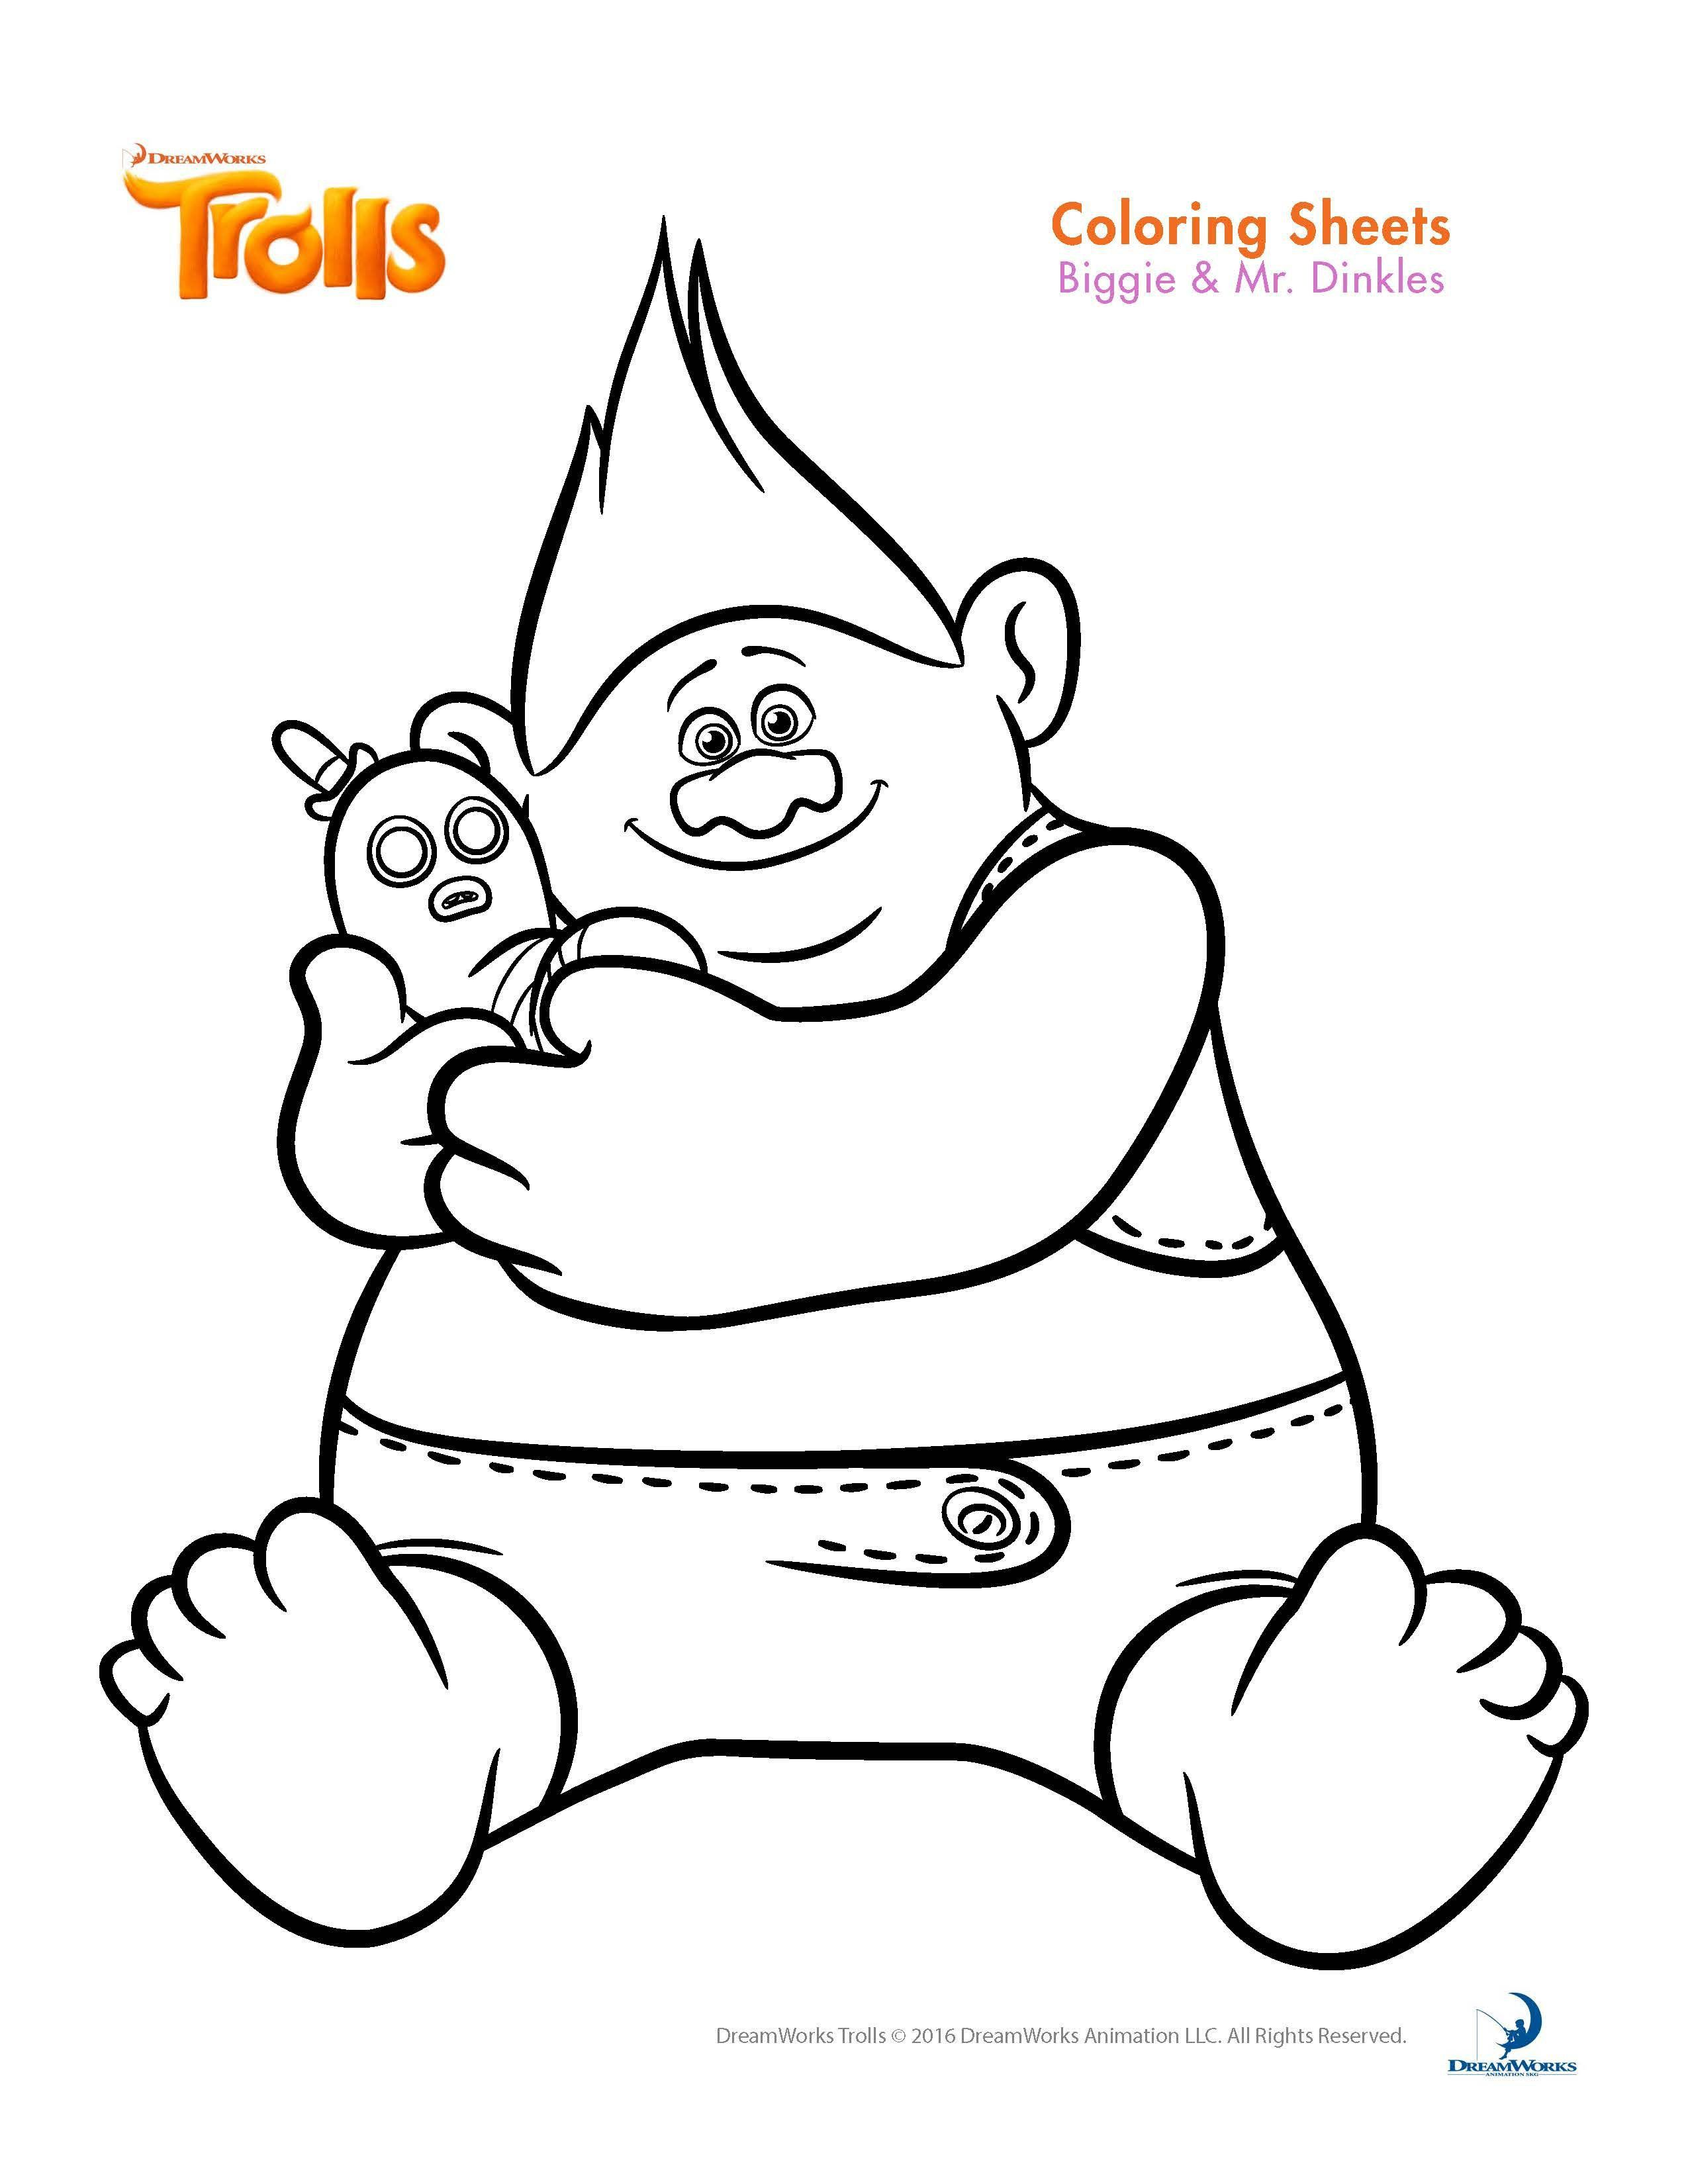 Trolls Mr Dinkles Coloring Pages From The Thousands Of Pictures On The Internet About Trolls Mr Dinkles Coloring Pages We All Choices The Top Selections Alo